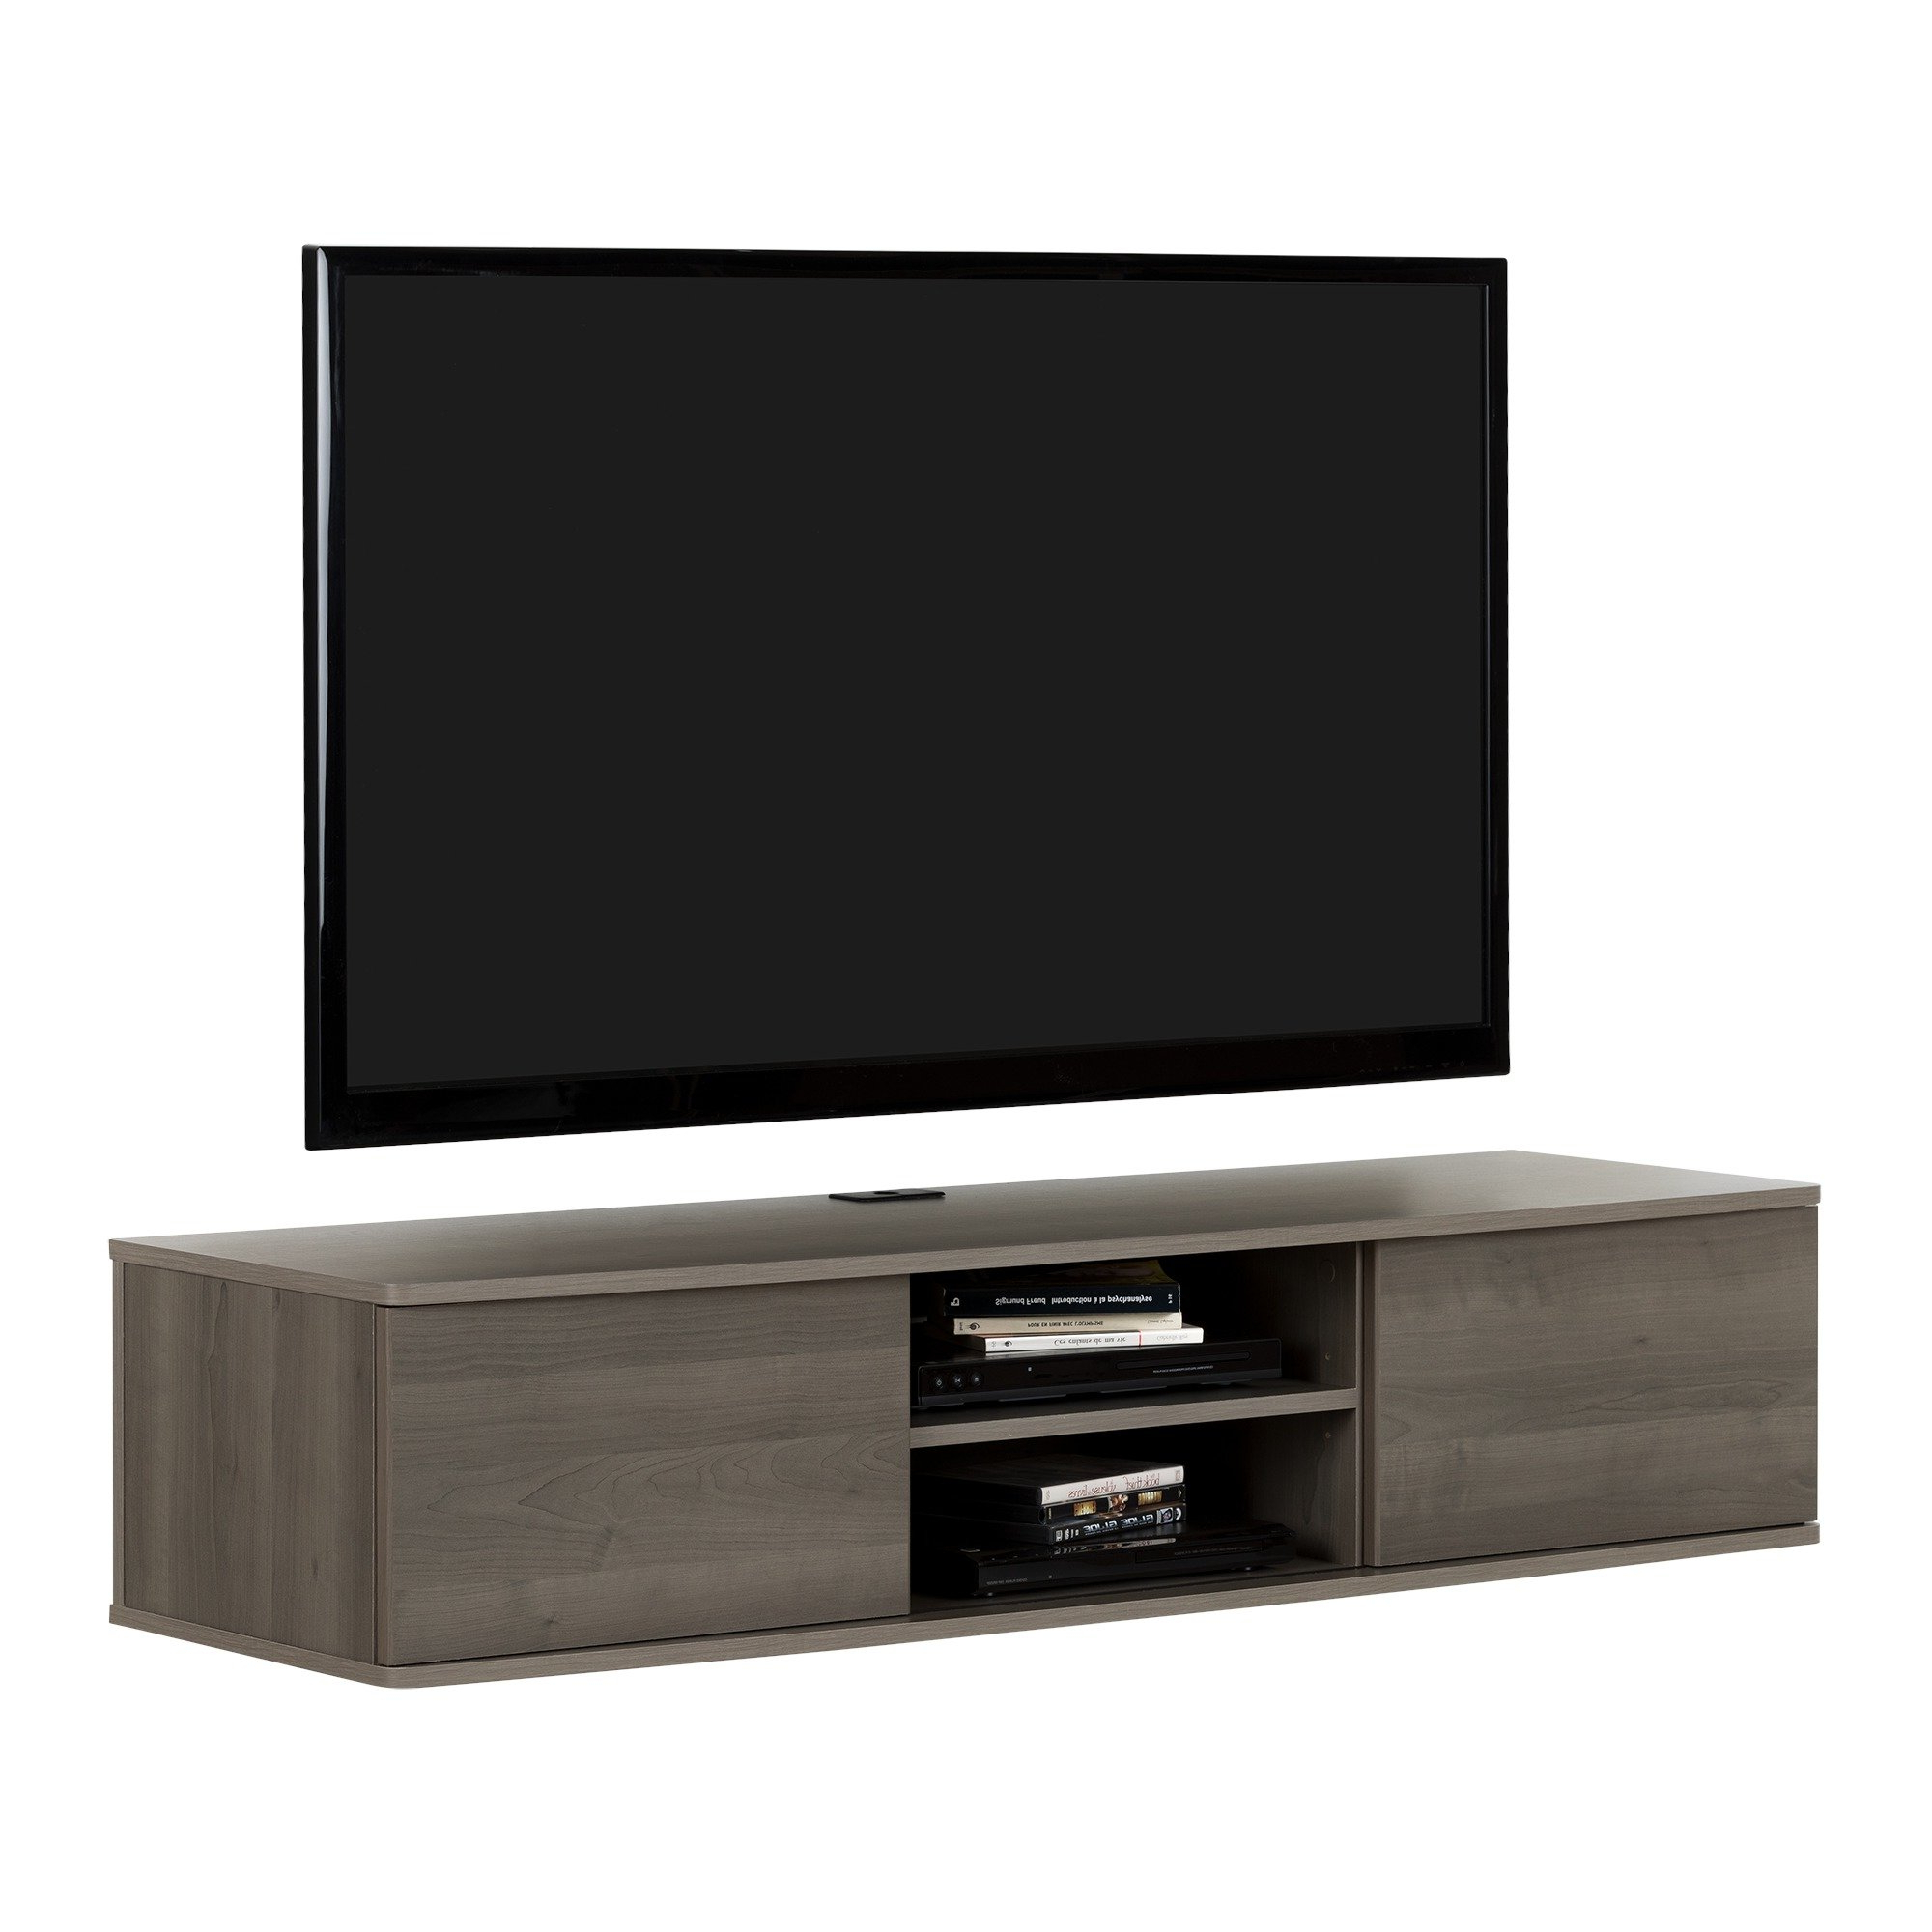 Allmodern Throughout Century Blue 60 Inch Tv Stands (View 2 of 20)